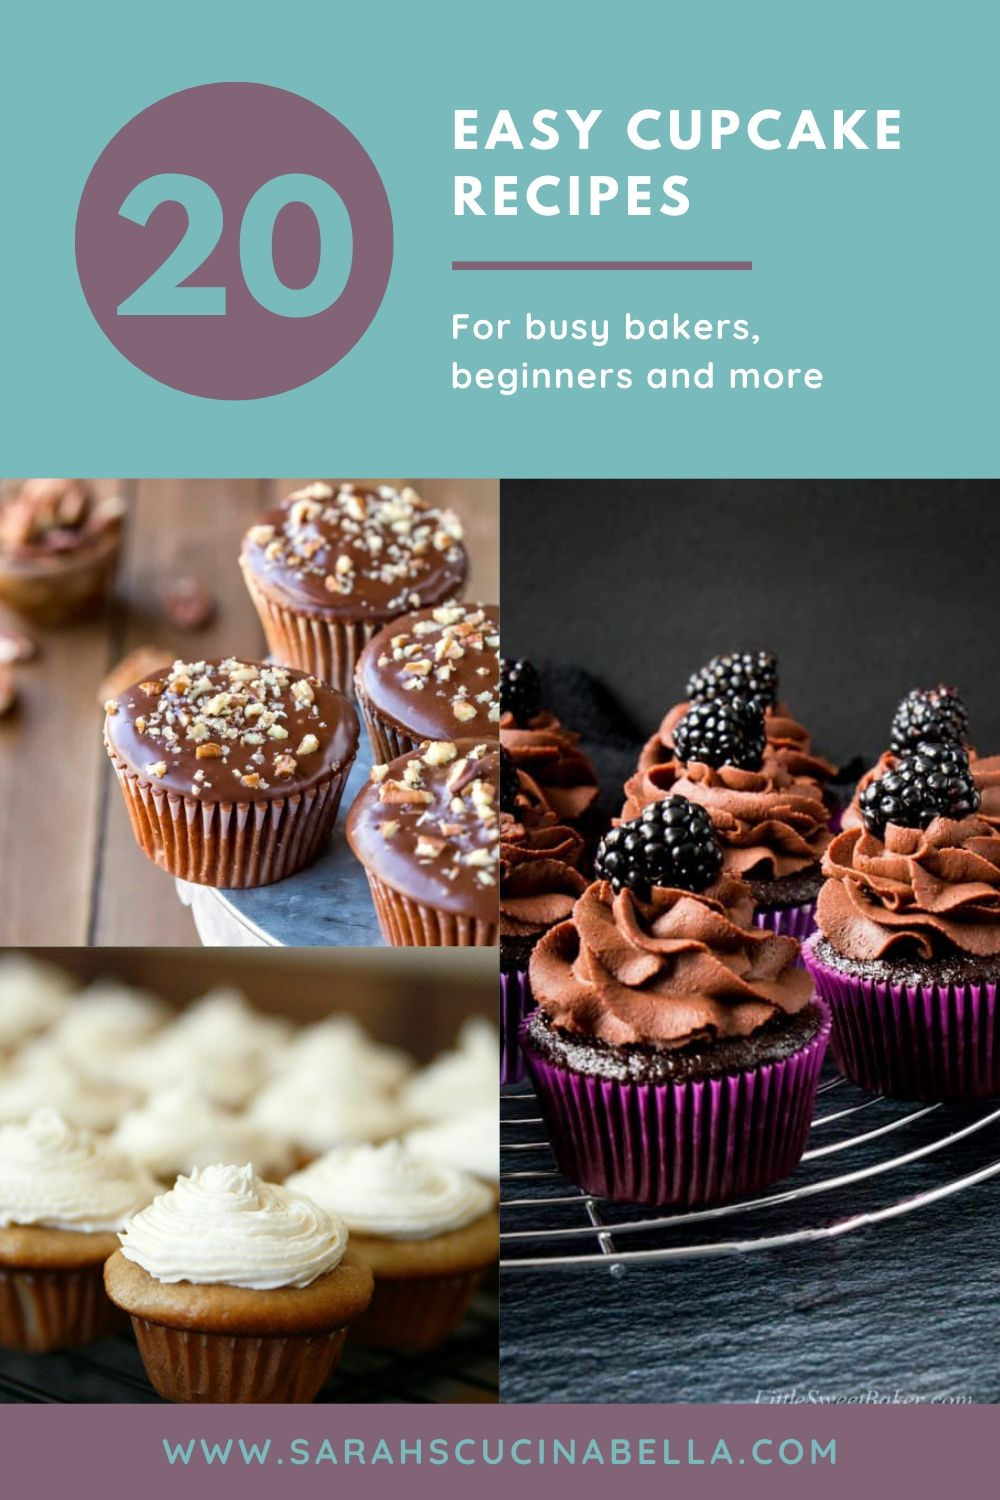 20 Easy Cupcake Recipes graphic. This shows three cupcake photos — a brown cupcake with brown frosting and a blackberry on top; a caramel colored cupcake with white frosting and a brown cupcake with brown glaze and chopped nuts.